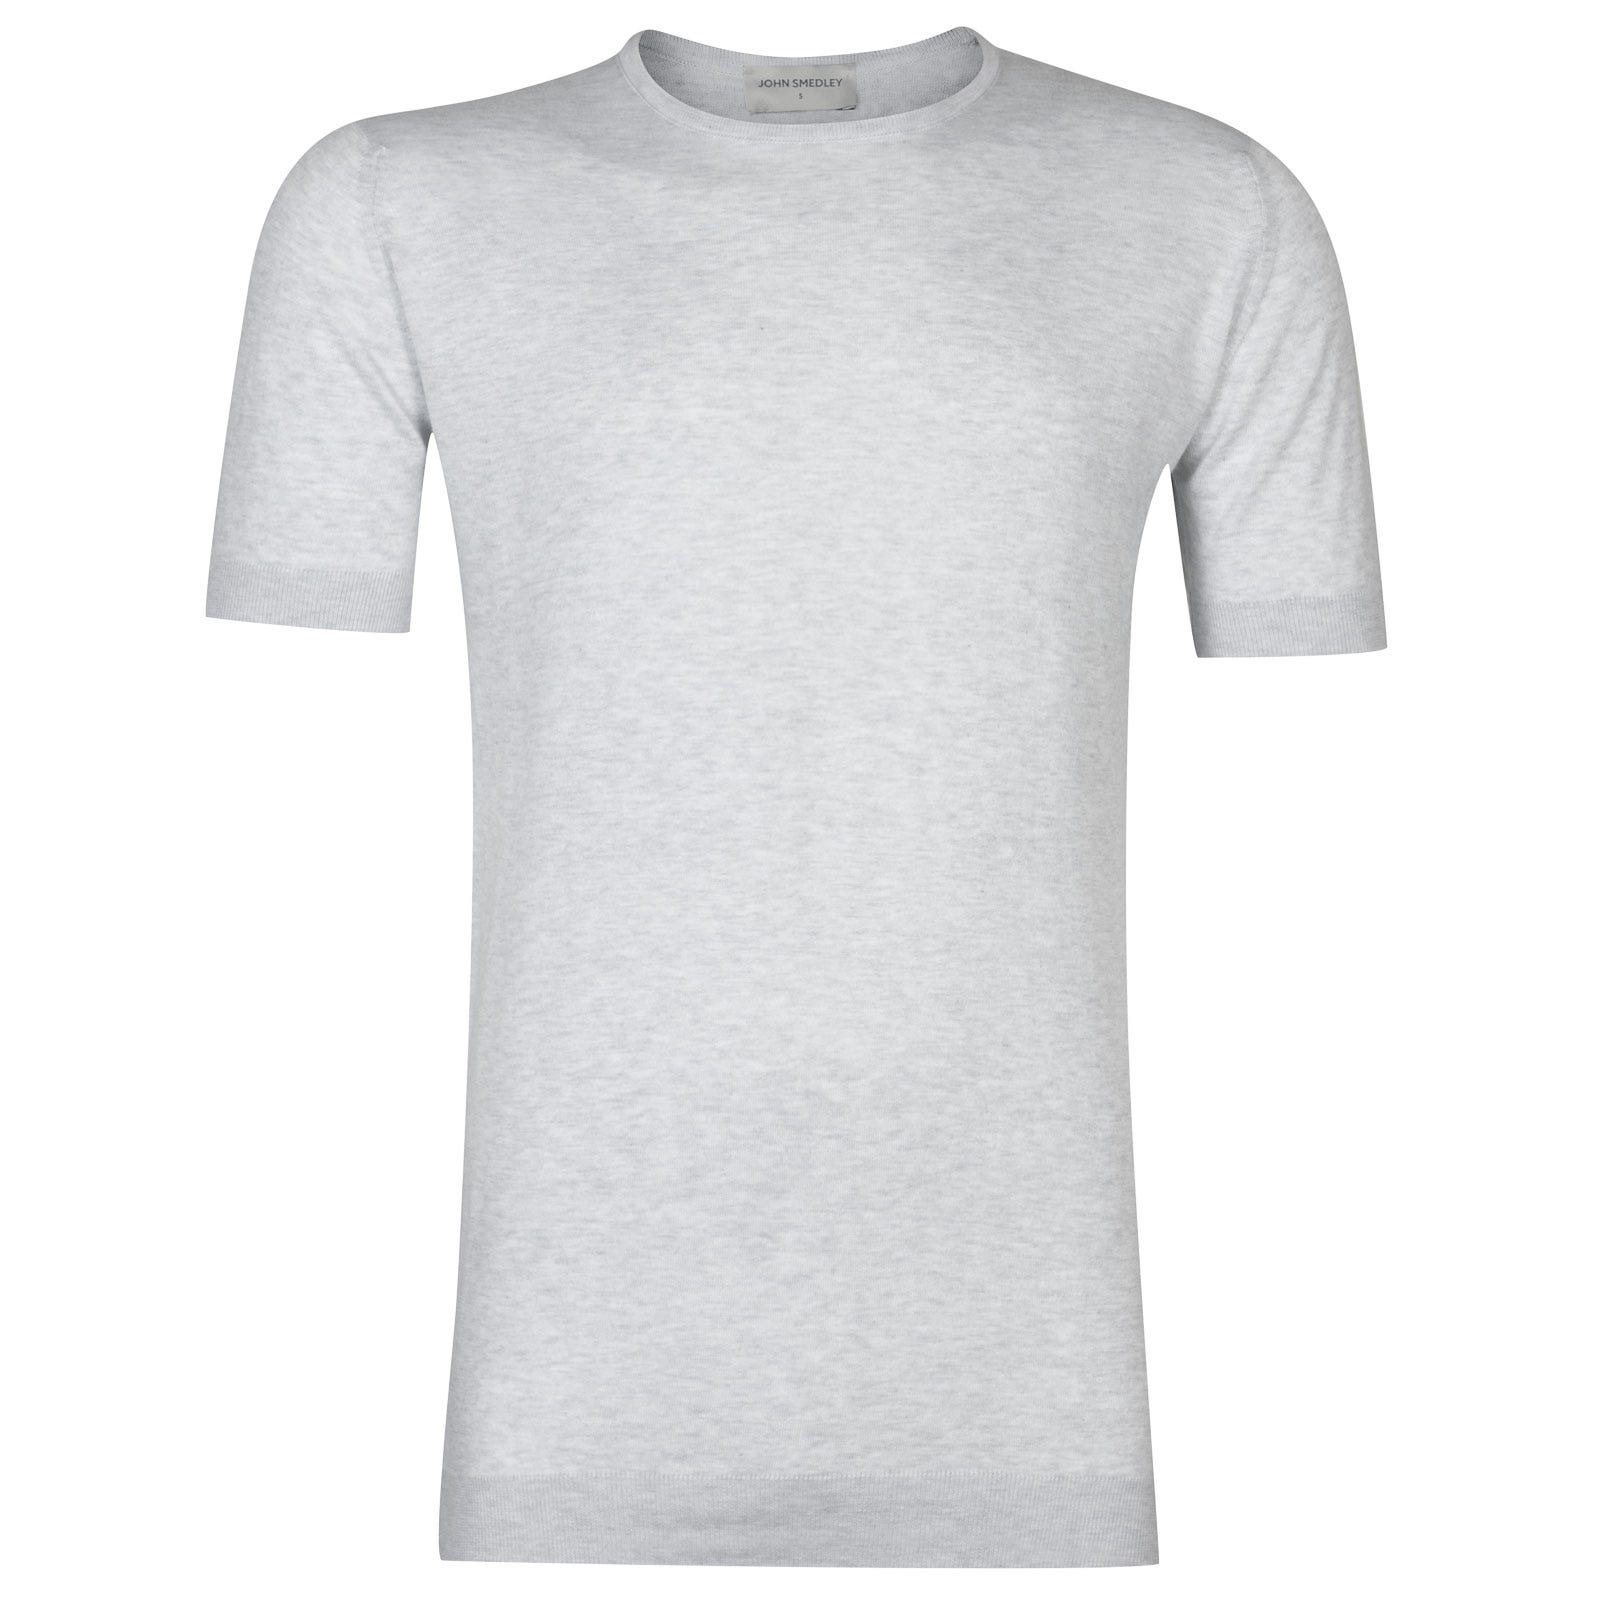 John Smedley belden Sea Island Cotton T-shirt in Feather Grey-XL